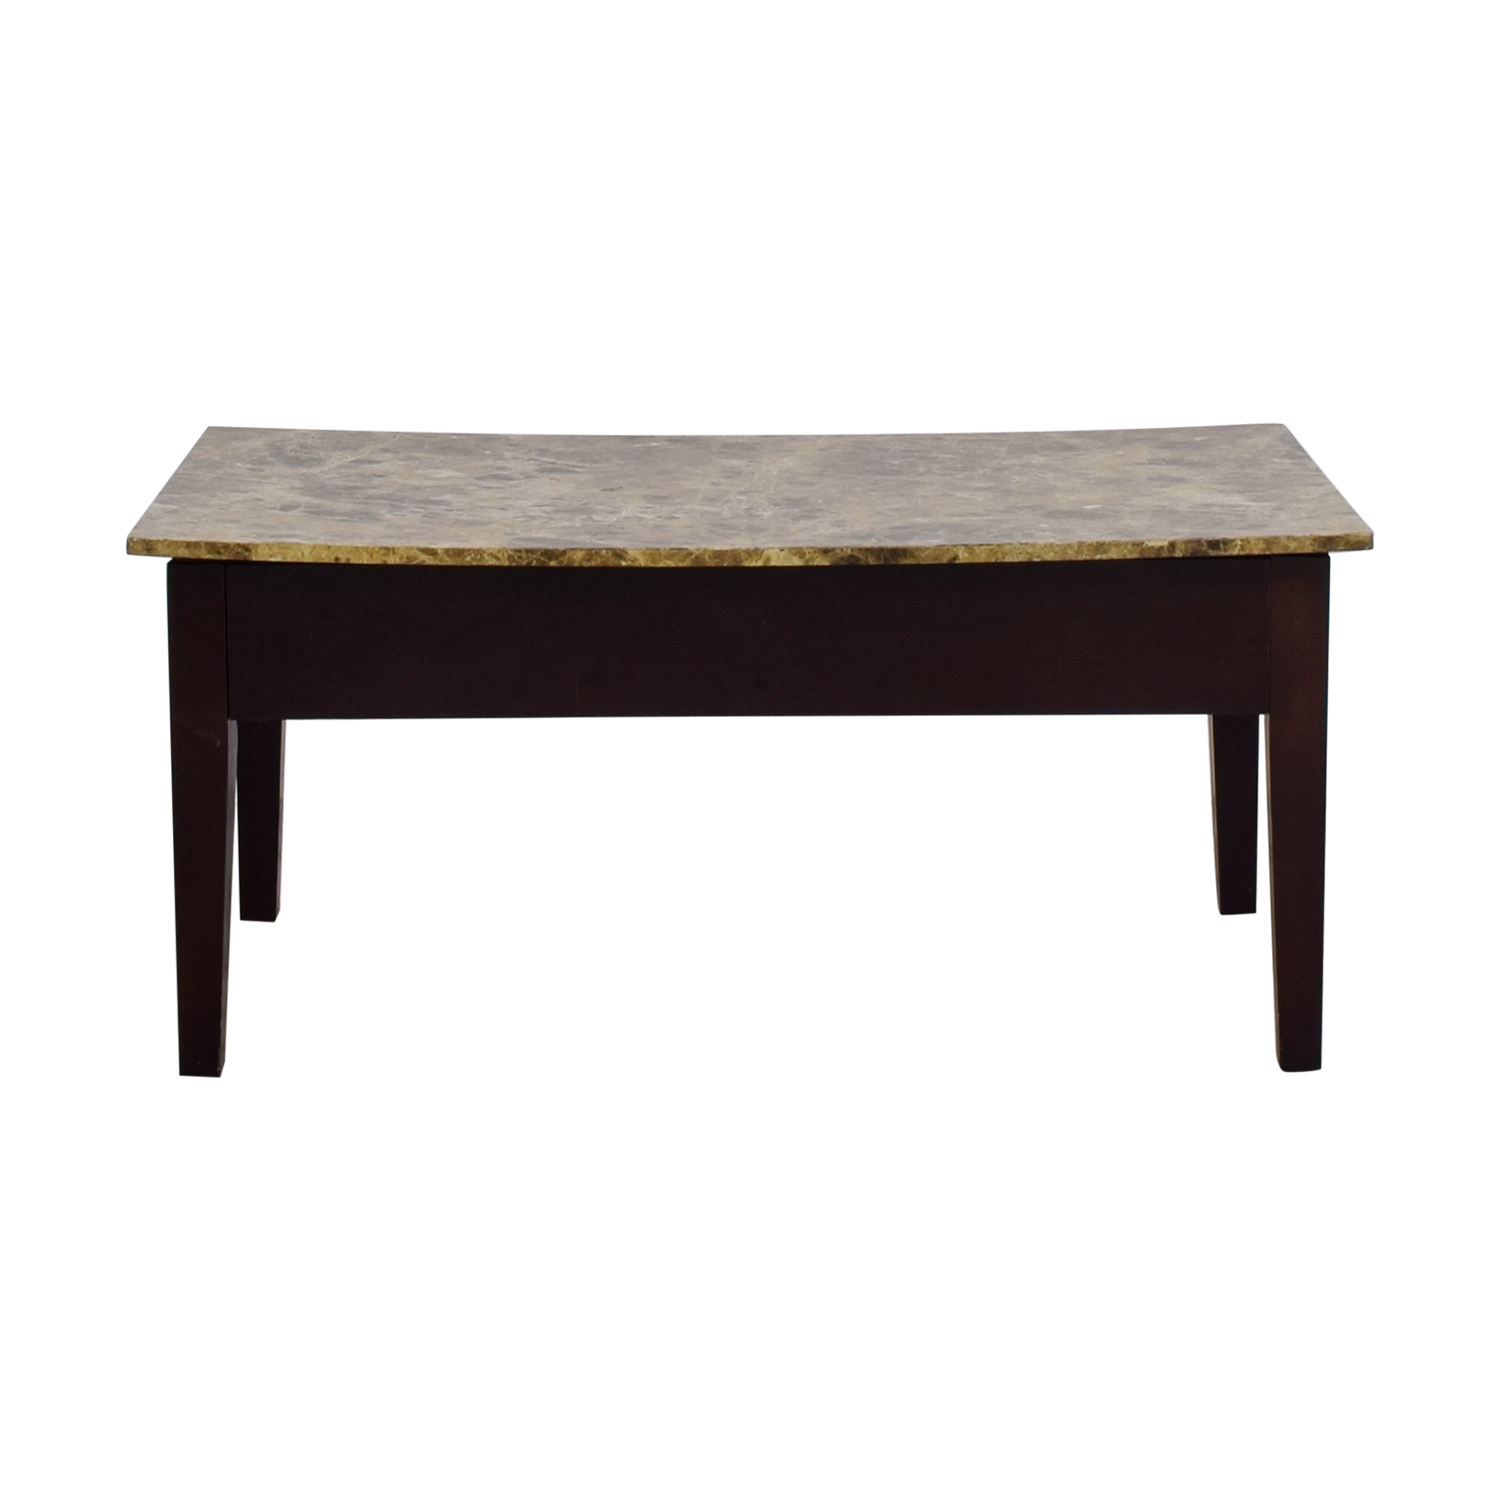 Ikea Marble Top Coffee Table: IKEA IKEA White Round Coffee Table / Tables